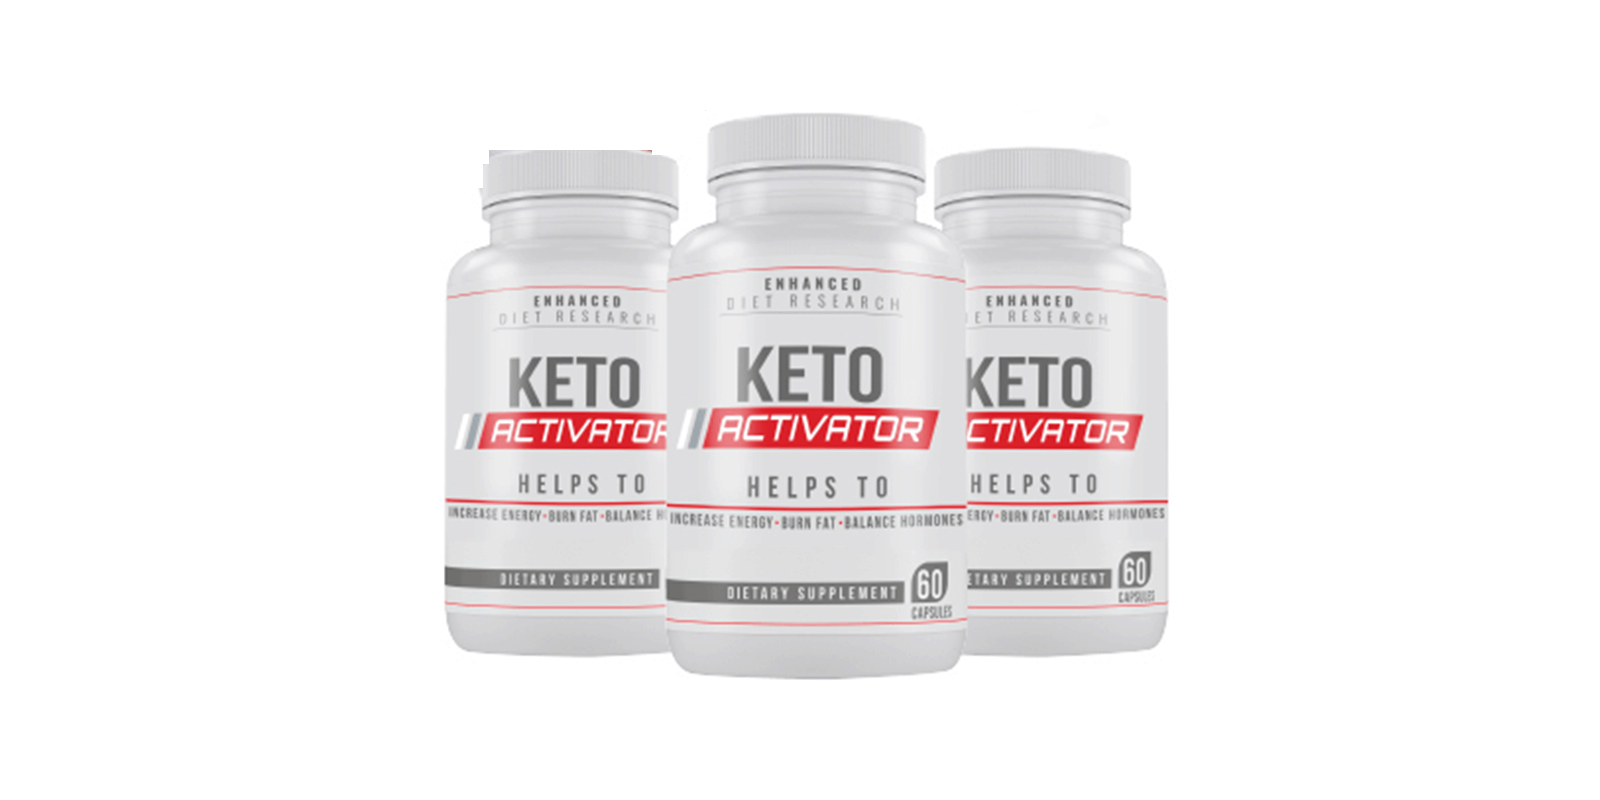 Keto Activator reviews